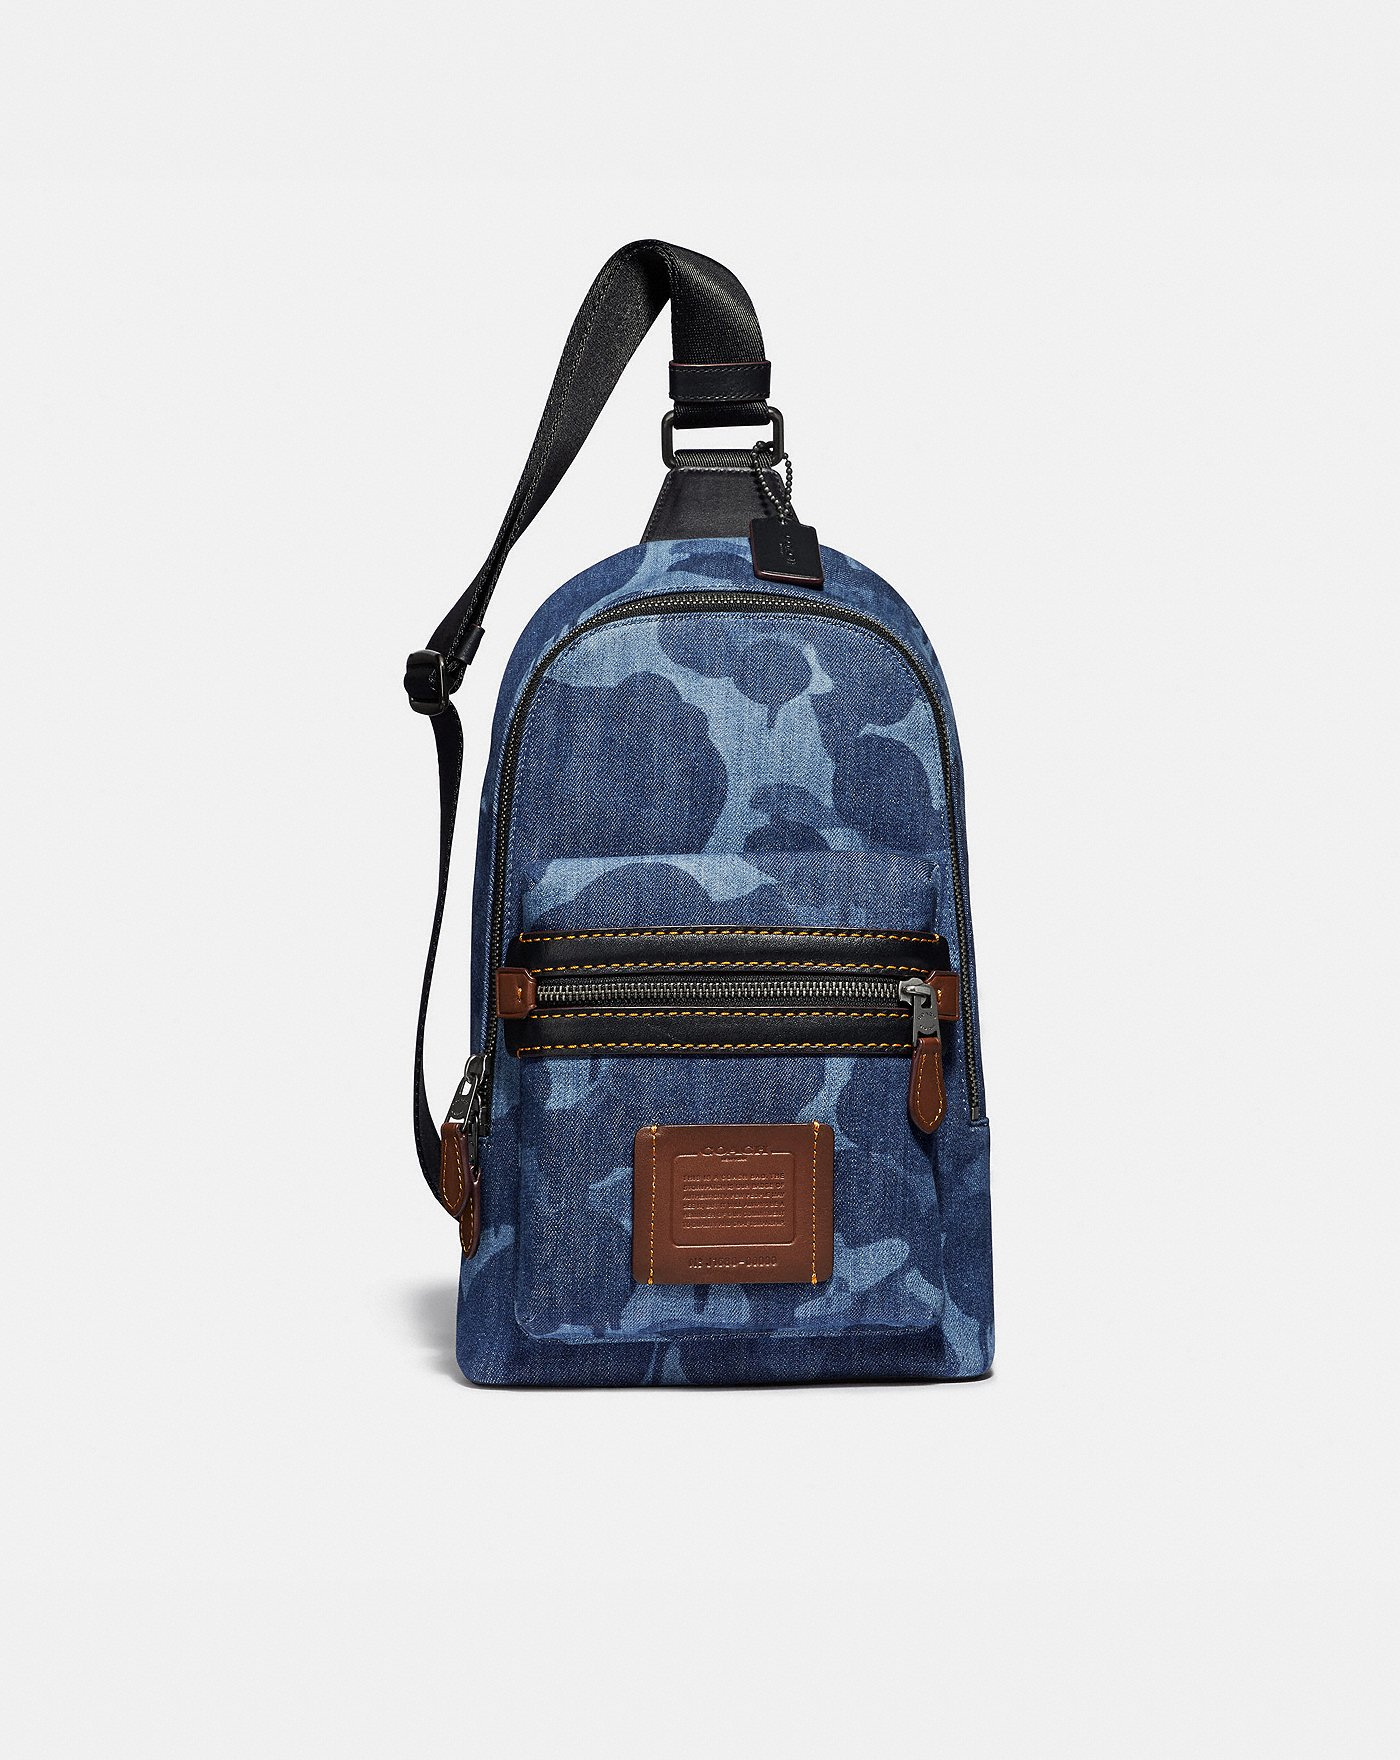 Academy pack with wild beast print coach